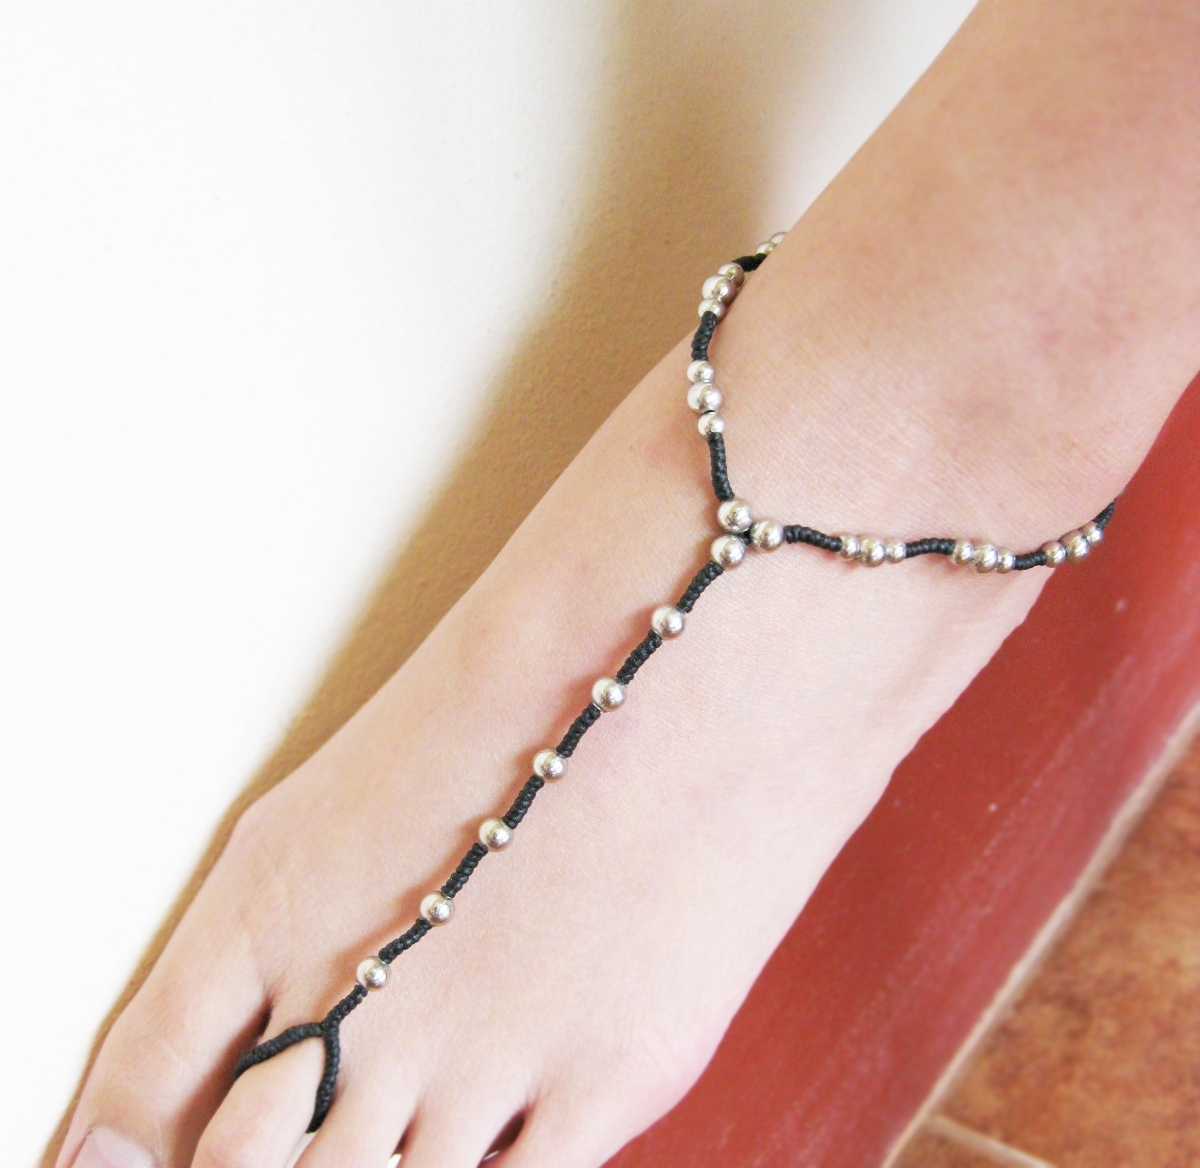 Anklet Toe Ring Barefoot Sandals Footwear Silver Bead Black Wax Pertaining To Most Popular Anklets With Toe Rings (View 11 of 16)